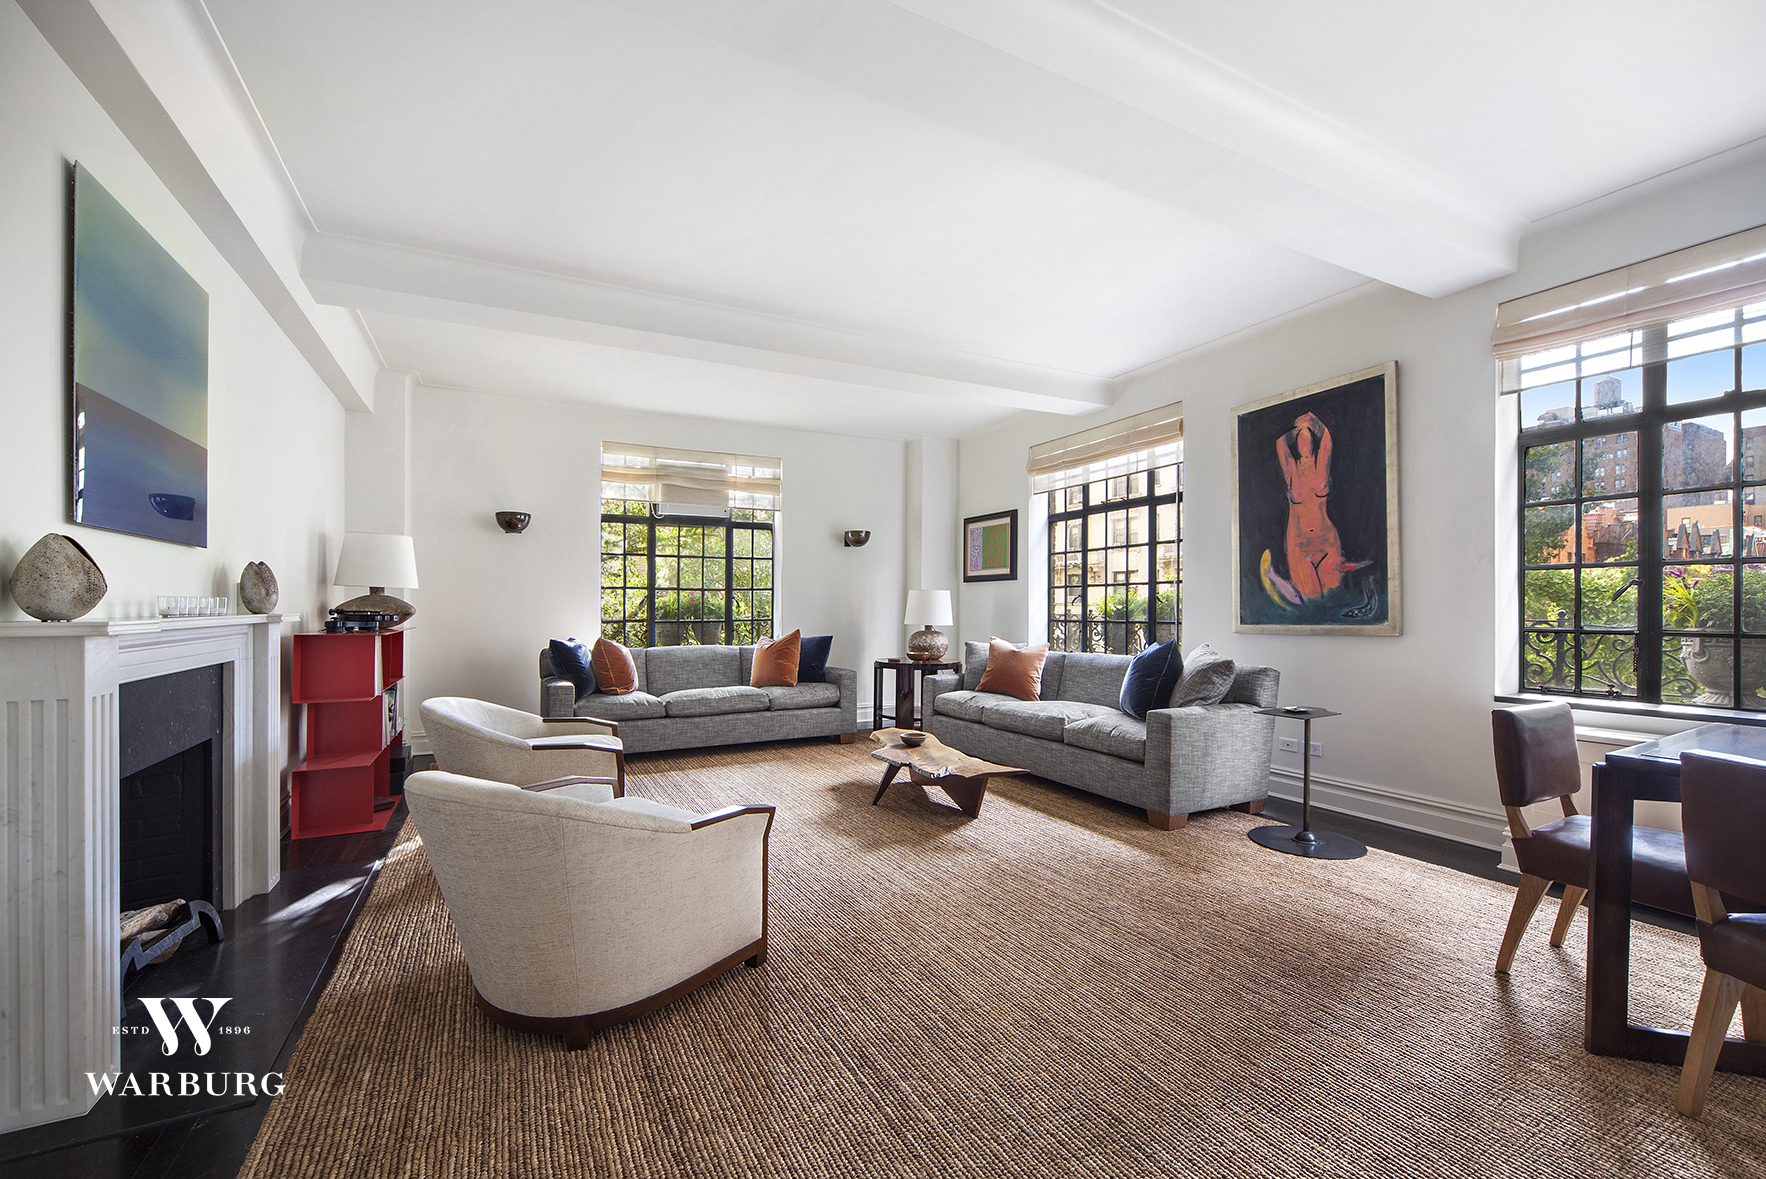 "Heralded by The New York Times as ""one of the grandest buildings on West End,"" this Emery Roth deigned masterpiece at 580 West End Avenue has few rivals.  The beige brick façade, complimented by oversized casement windows, is a fine example of Roth's use of both modernism and old-world charm.  Once inside this four-bedroom, four-bathroom full-floor residence its grand proportions are revealed.   Boasting over nine and half foot ceilings and 3,000 square feet, this sprawling eight-room home has undergone a complete and remarkable renovation.  The current owner updated the apartment and installed a state-of-the-art customized Savant audio/video system.  The elegant entrance gallery leads to a Western light-filled living space outfitted with three planted juliet balconies and a decorative fireplace. The adjacent dining space leads to a windowed kitchen equipped with top-of-the line finishes and appliances including a washer/dryer. A breakfast den is found at the end of the kitchen which is expertly crafted for casual gathering or informal dining. The breakfast den gives the apartment a flexible layout allowing for up to five bedrooms.  The expansive 22-foot corner master bedroom suite offers two closets including a large walk-in. The en-suite master bathroom is an elegant oasis. Two secondary bedrooms both have en-suite bathrooms, as does the fourth bedroom, which can easily be converted to an office or media room.   Built in 1926, with only 17 units, 580 West End Avenue is a private and elegant retreat from the commotion of city living.  There is a live-in super, central laundry room, and pets are welcome."